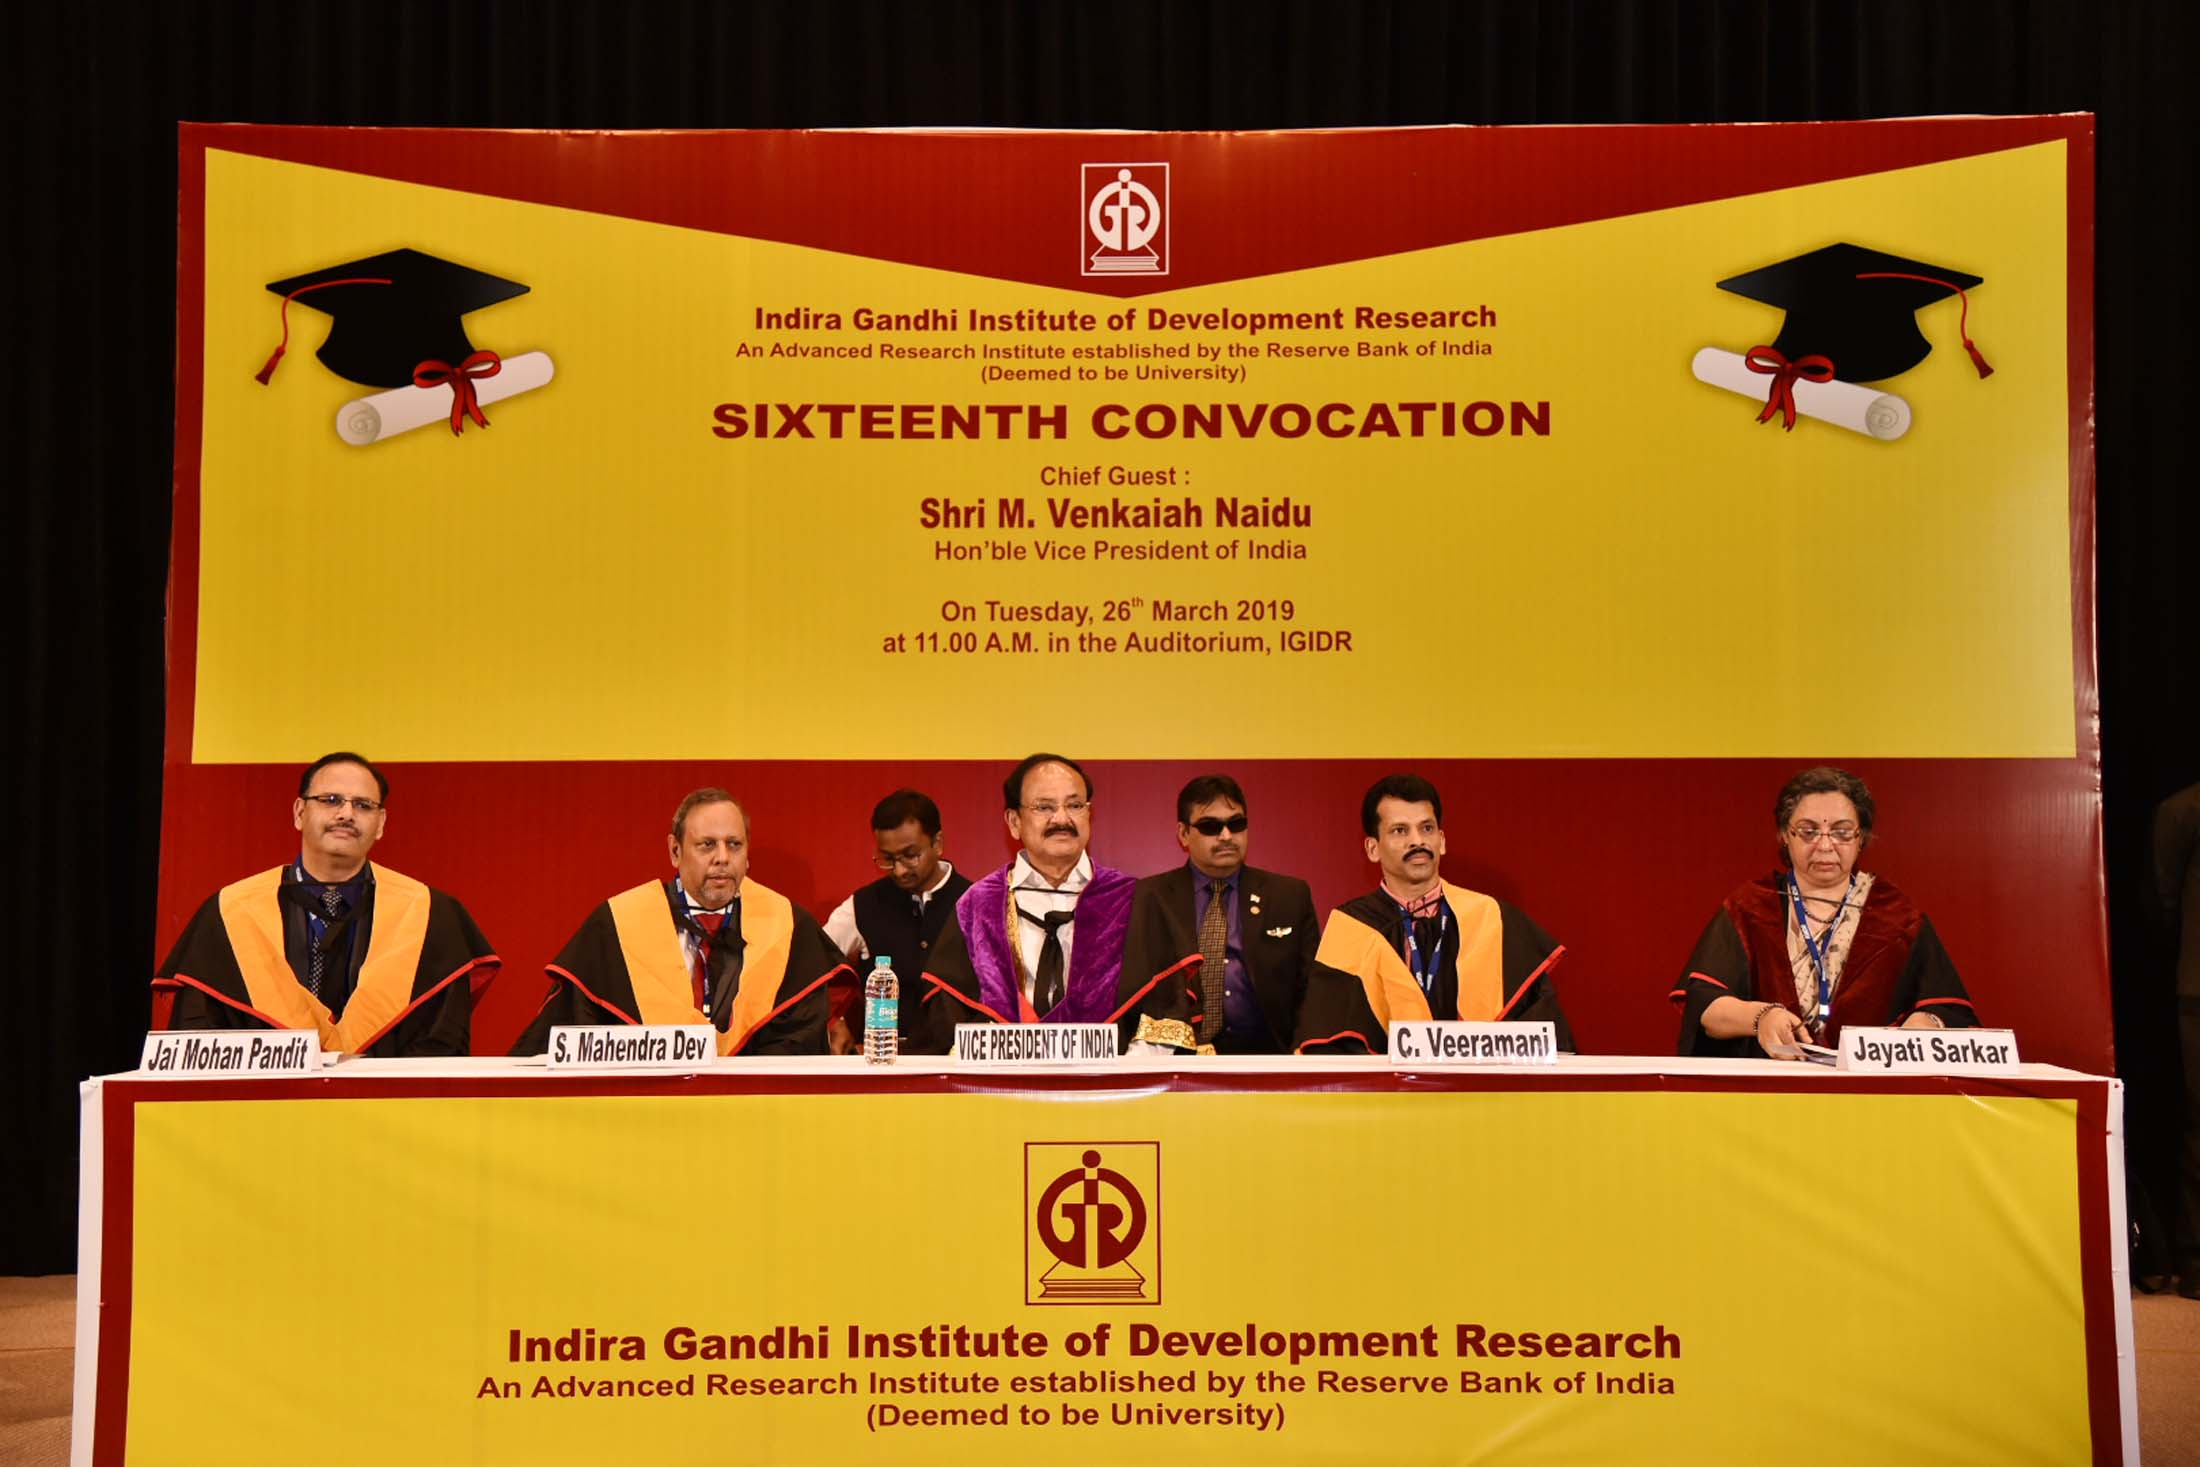 The Vice President, Shri M. Venkaiah Naidu at the 16th Convocation of the Indira Gandhi Institute of Development Research, in Mumbai on March 26, 2019.